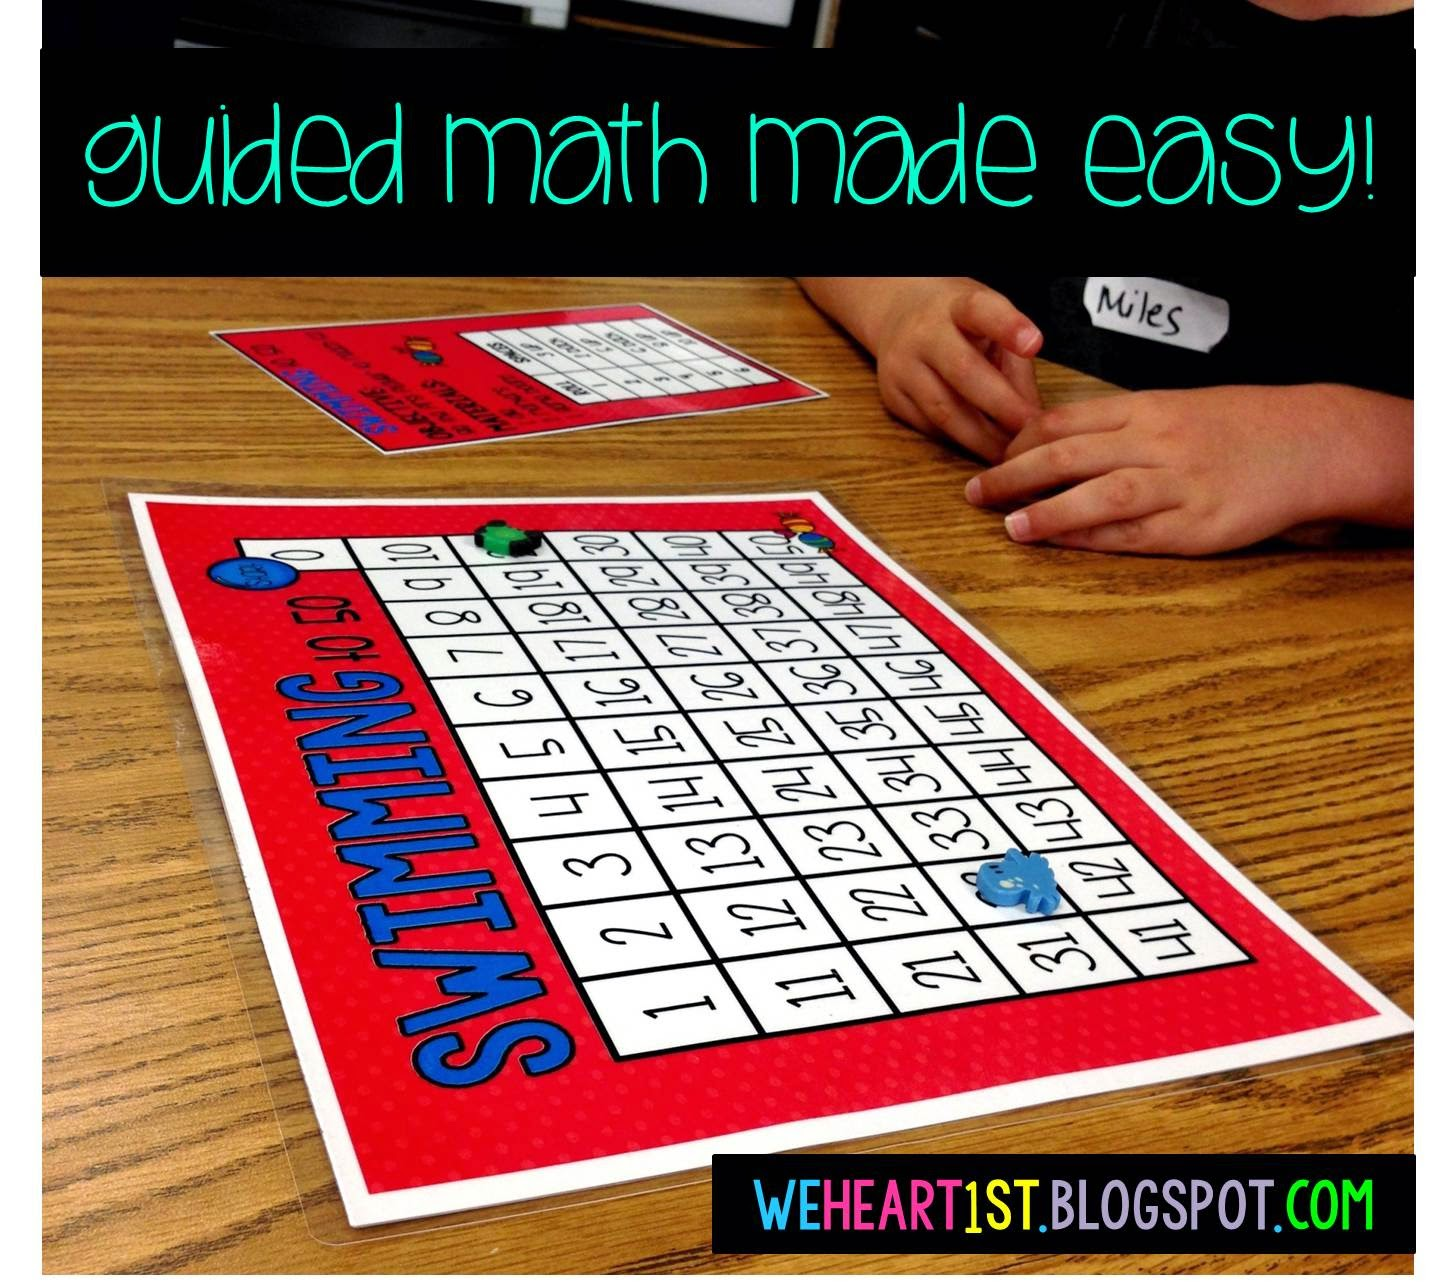 http://weheart1st.blogspot.com/2014/08/why-guided-math-rotations-rock.html